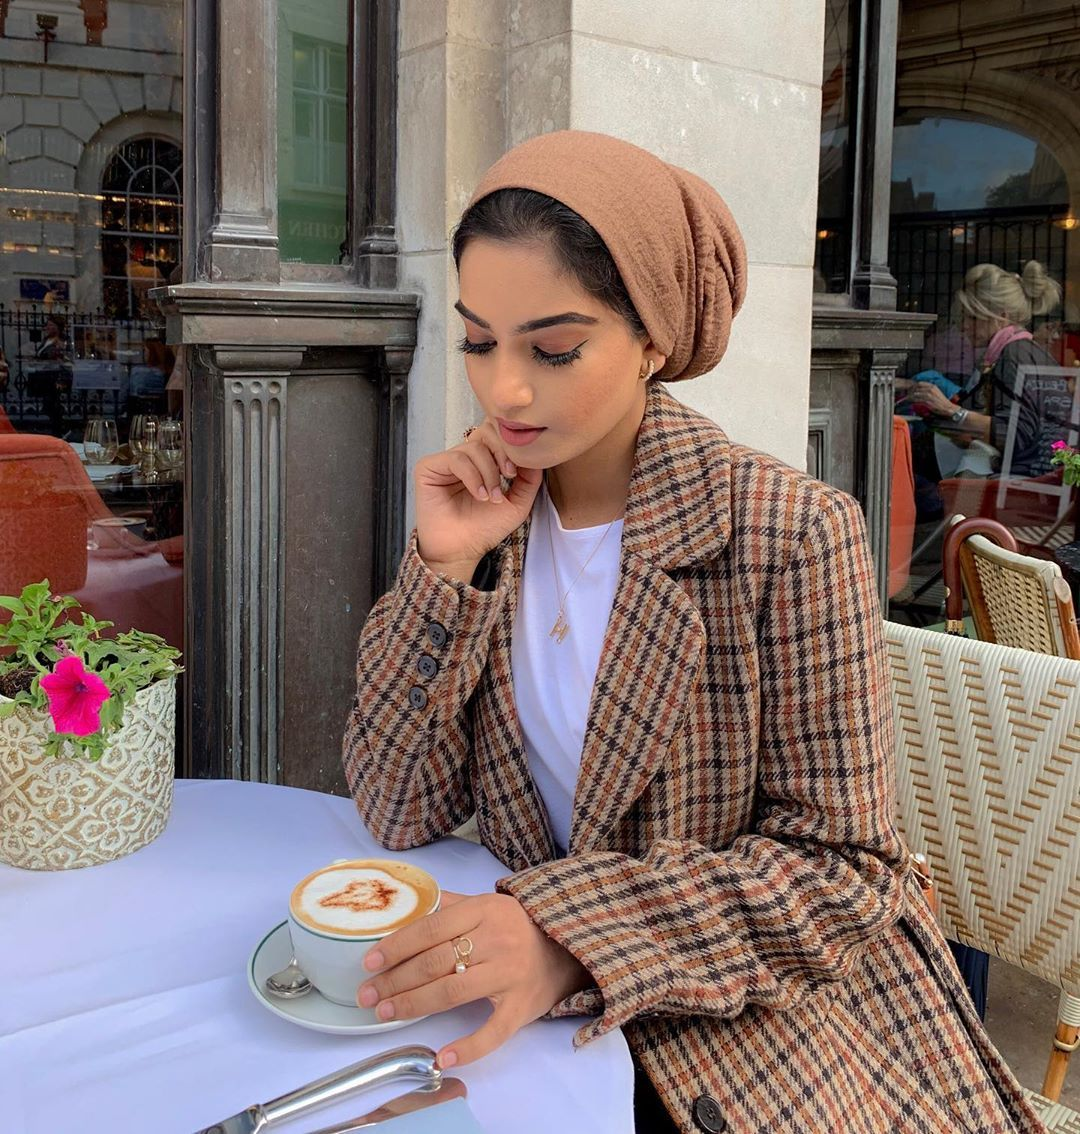 """Photo of Hajra on Instagram: """"Going to Amsterdam this weekend, need all your suggestions where to go and what to do!"""""""